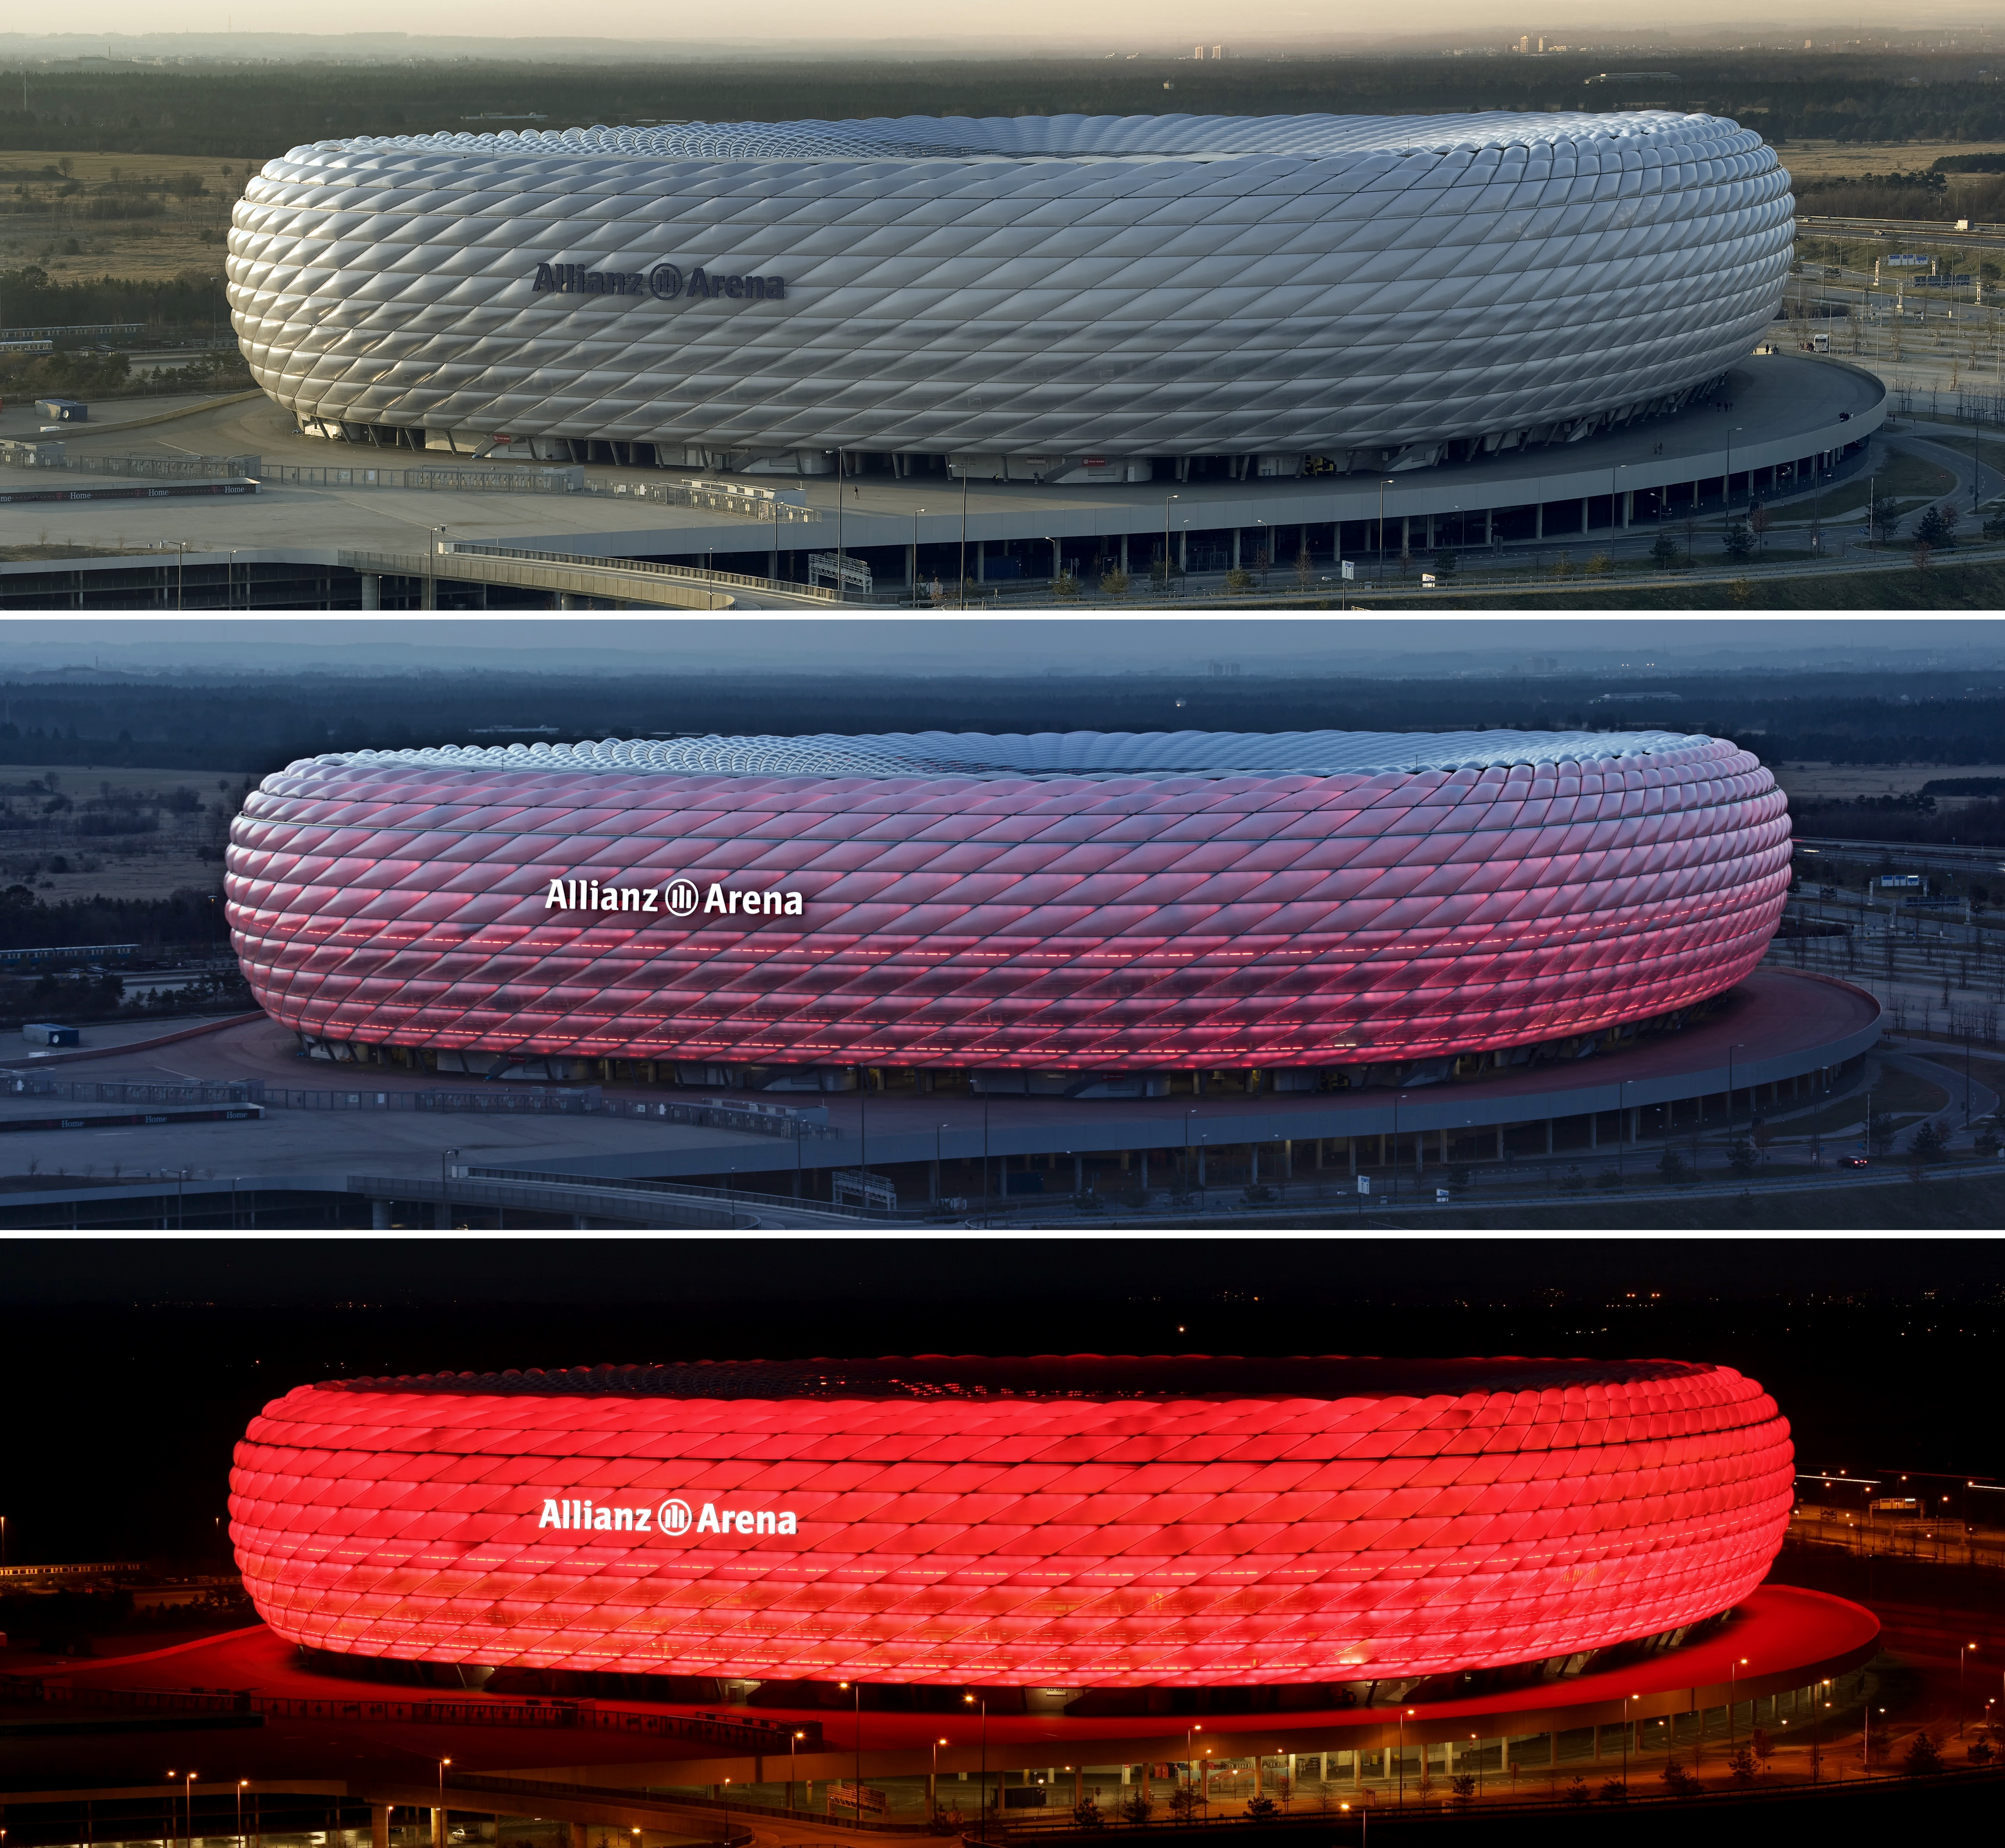 datei allianz arena zu verschiedenen wikipedia. Black Bedroom Furniture Sets. Home Design Ideas